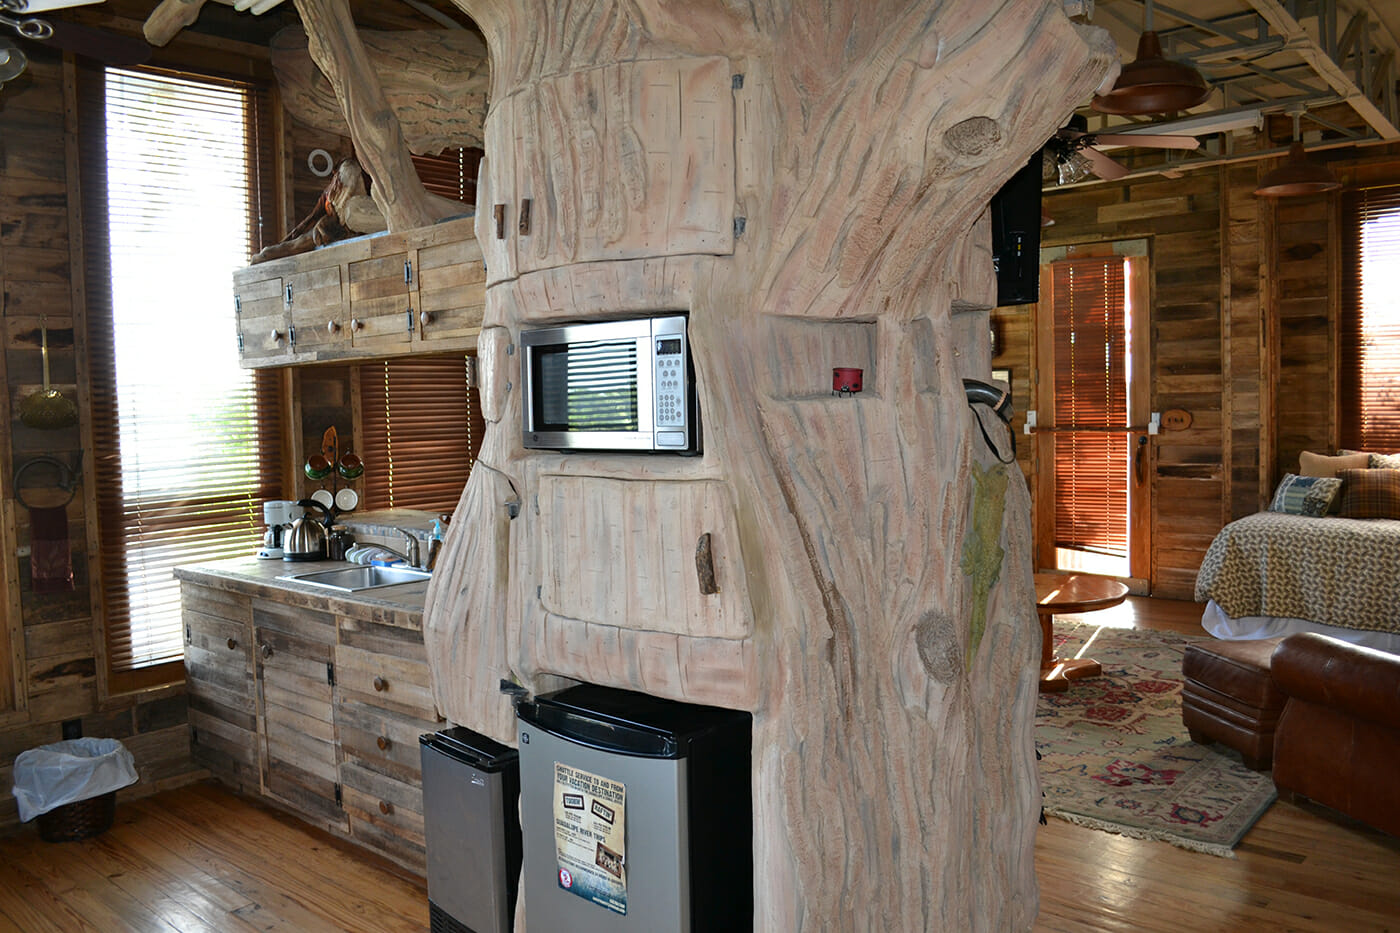 secluded Treehouse owned by Guadalupe River Houses in Texas